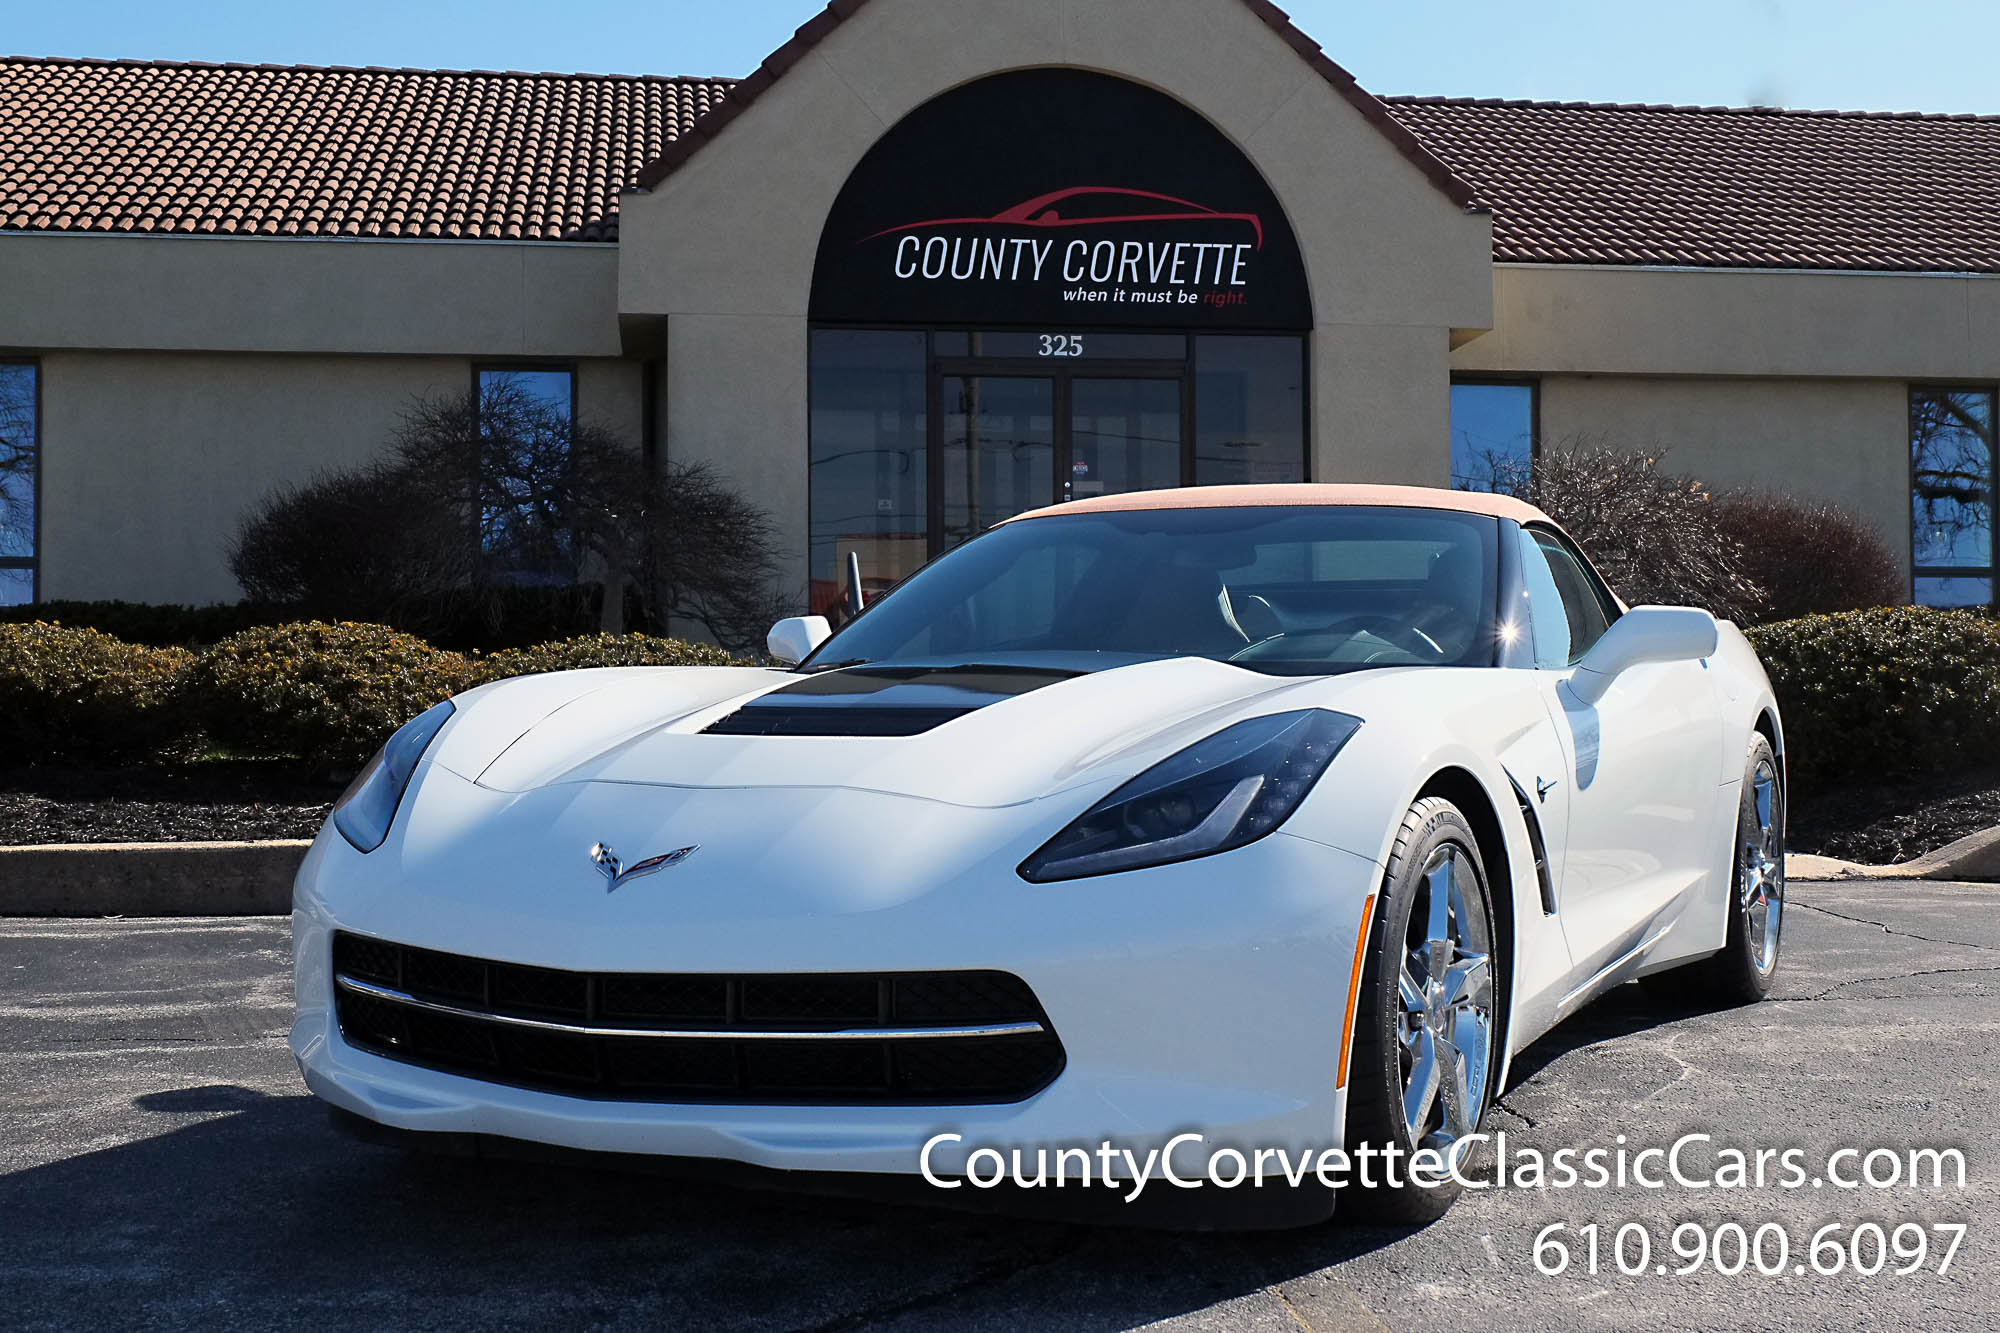 2014-Corvette-Stingray-Convertible-2.jpg